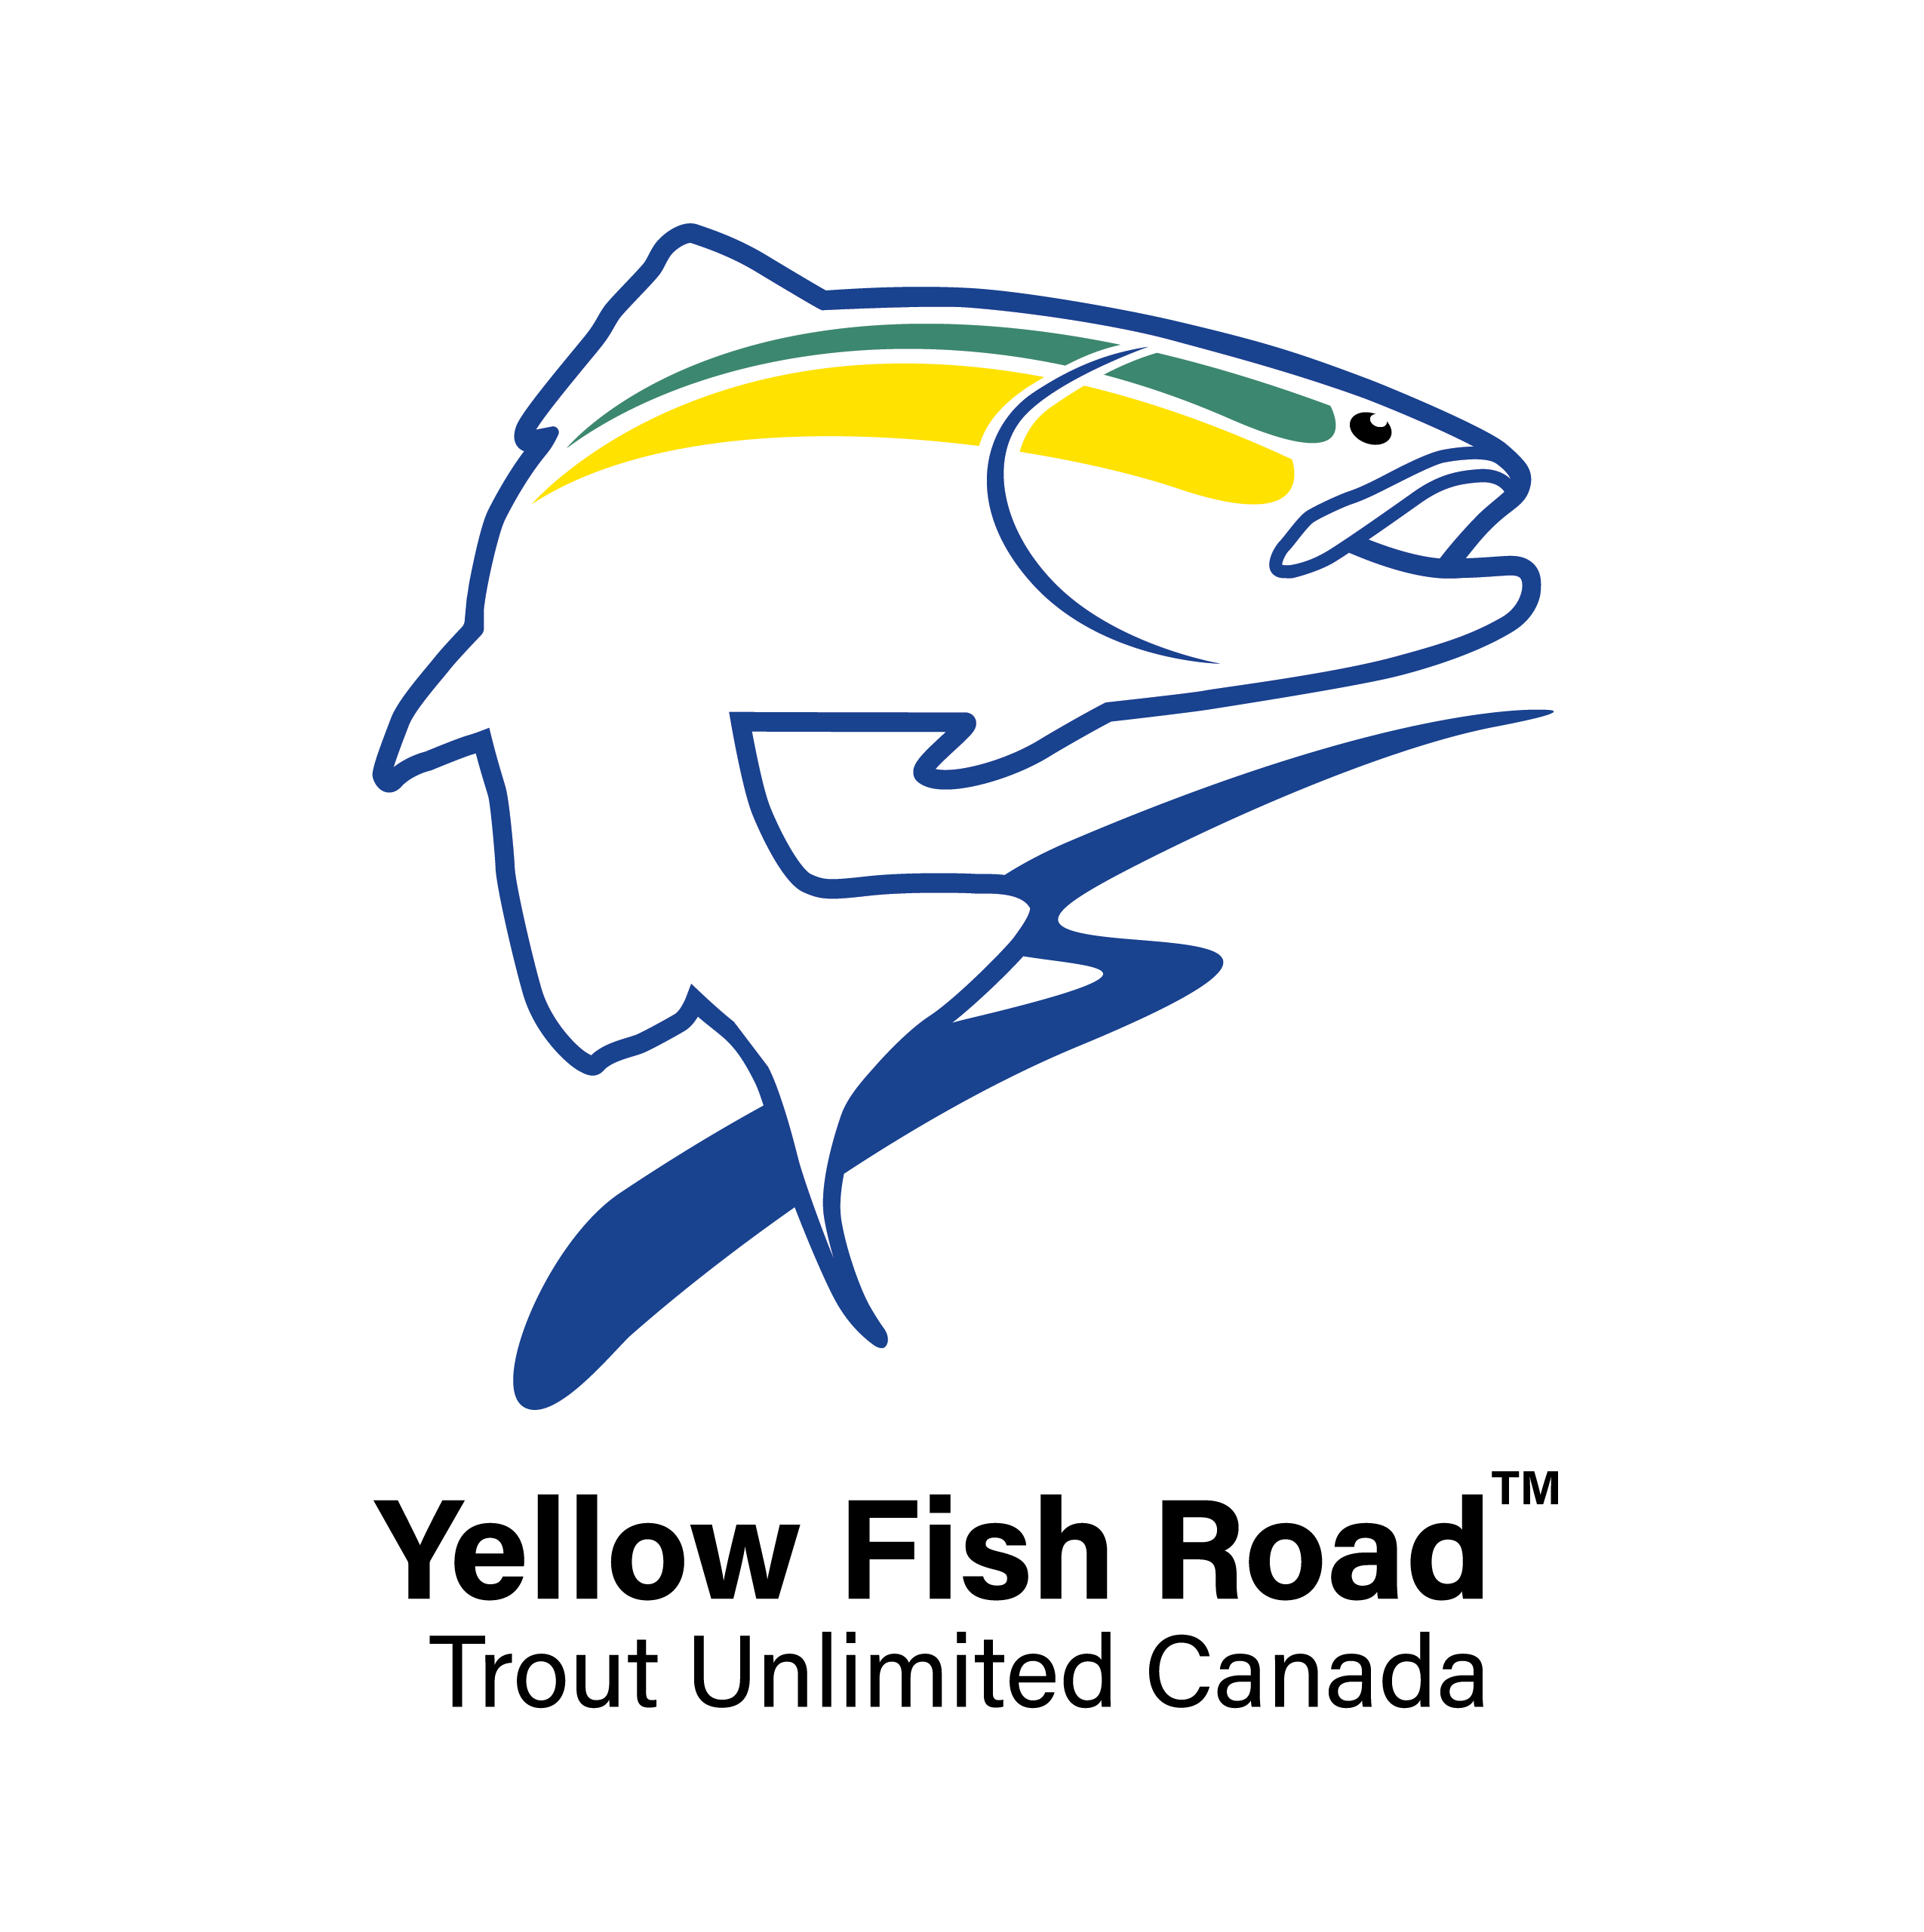 tuc_yellowfishroad_badgetransparent